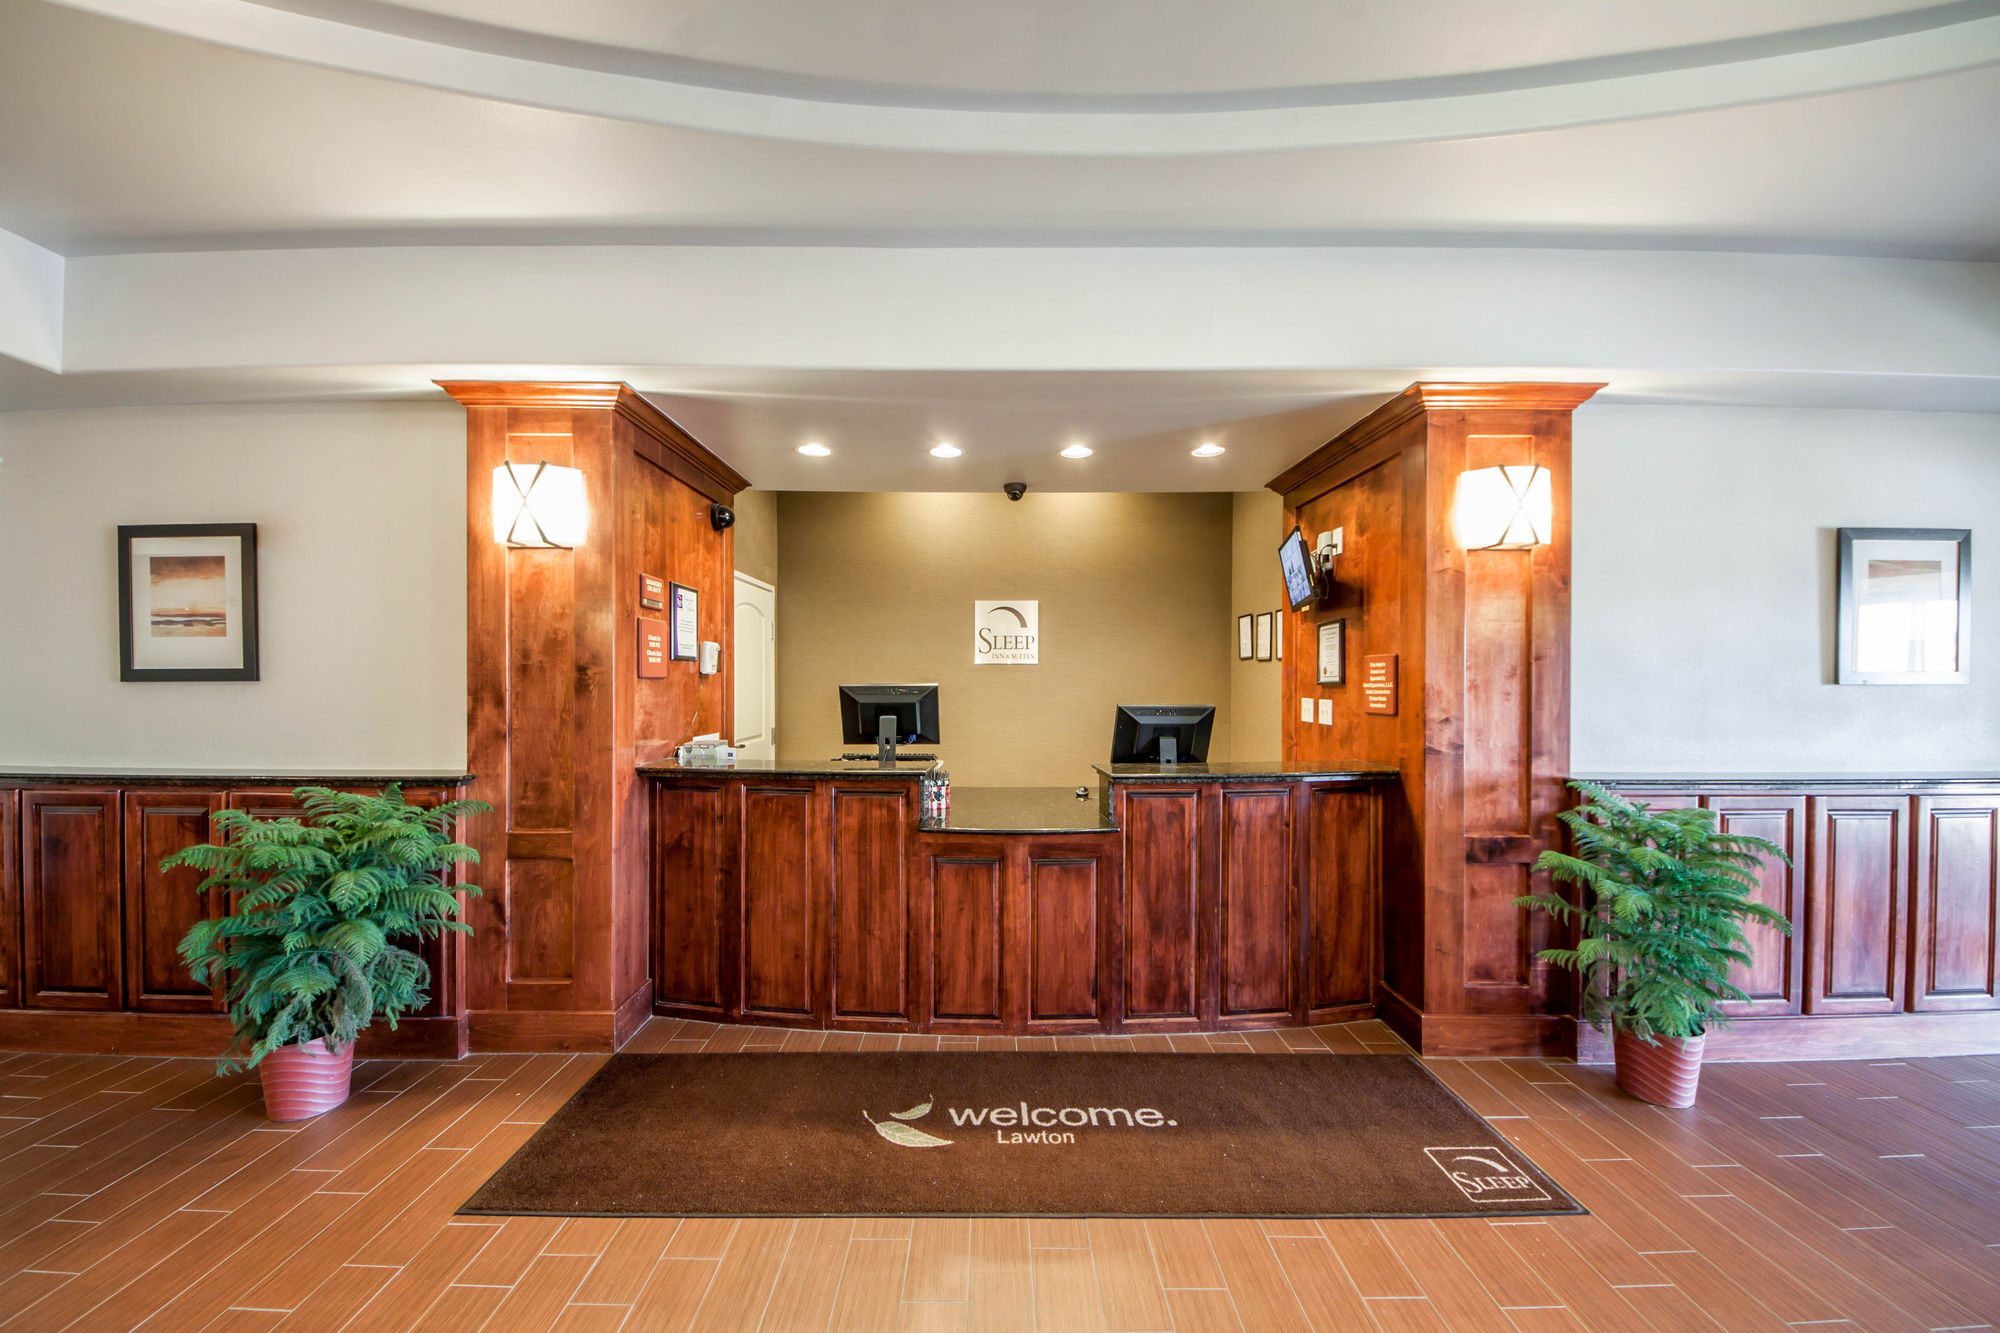 Lawton Hotel Coupons for Lawton, Oklahoma - FreeHotelCoupons.com